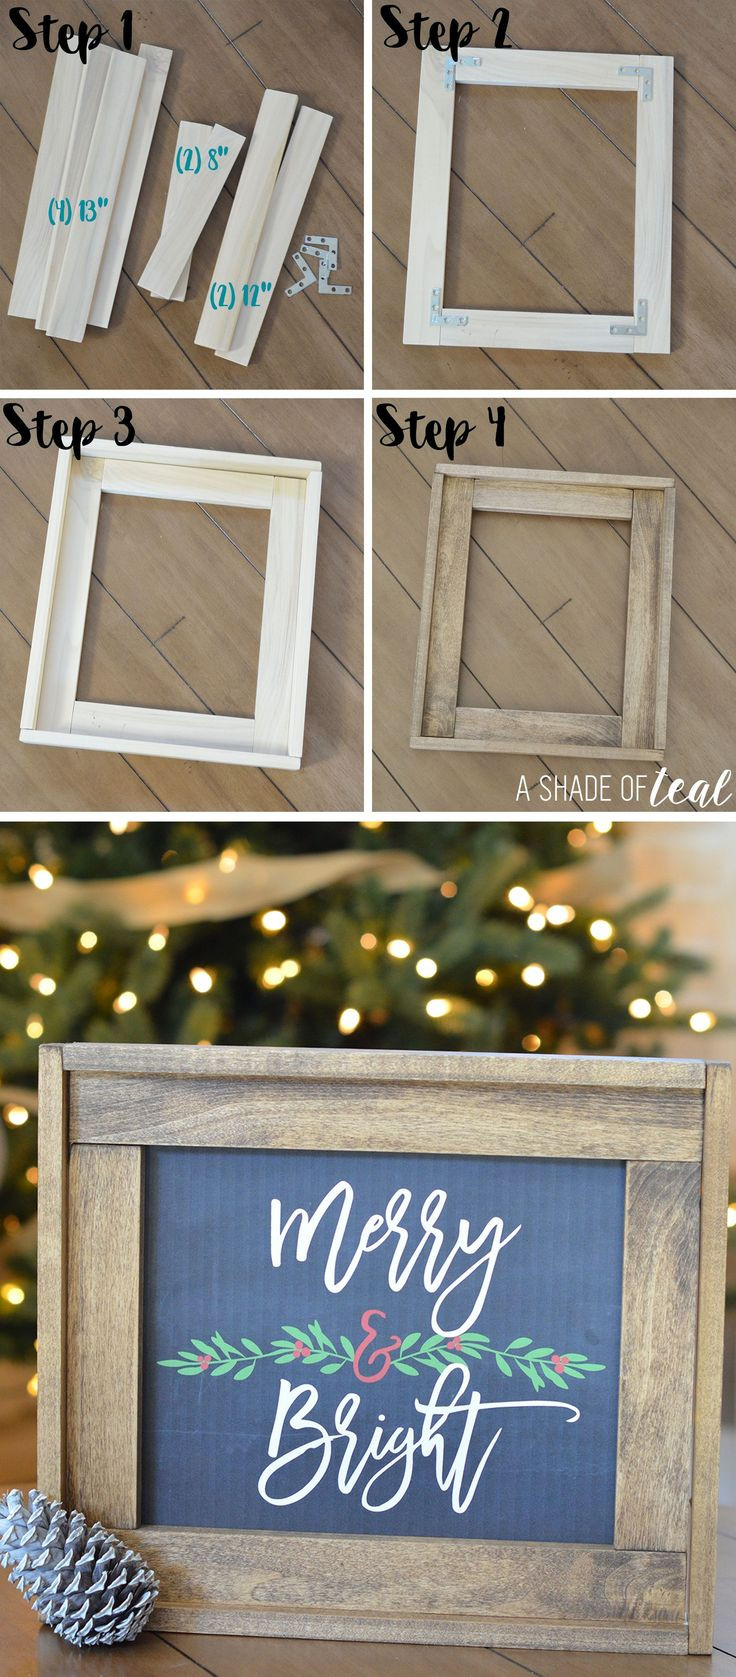 Best ideas about DIY Wooden Frames . Save or Pin Best 25 Wood frames ideas on Pinterest Now.